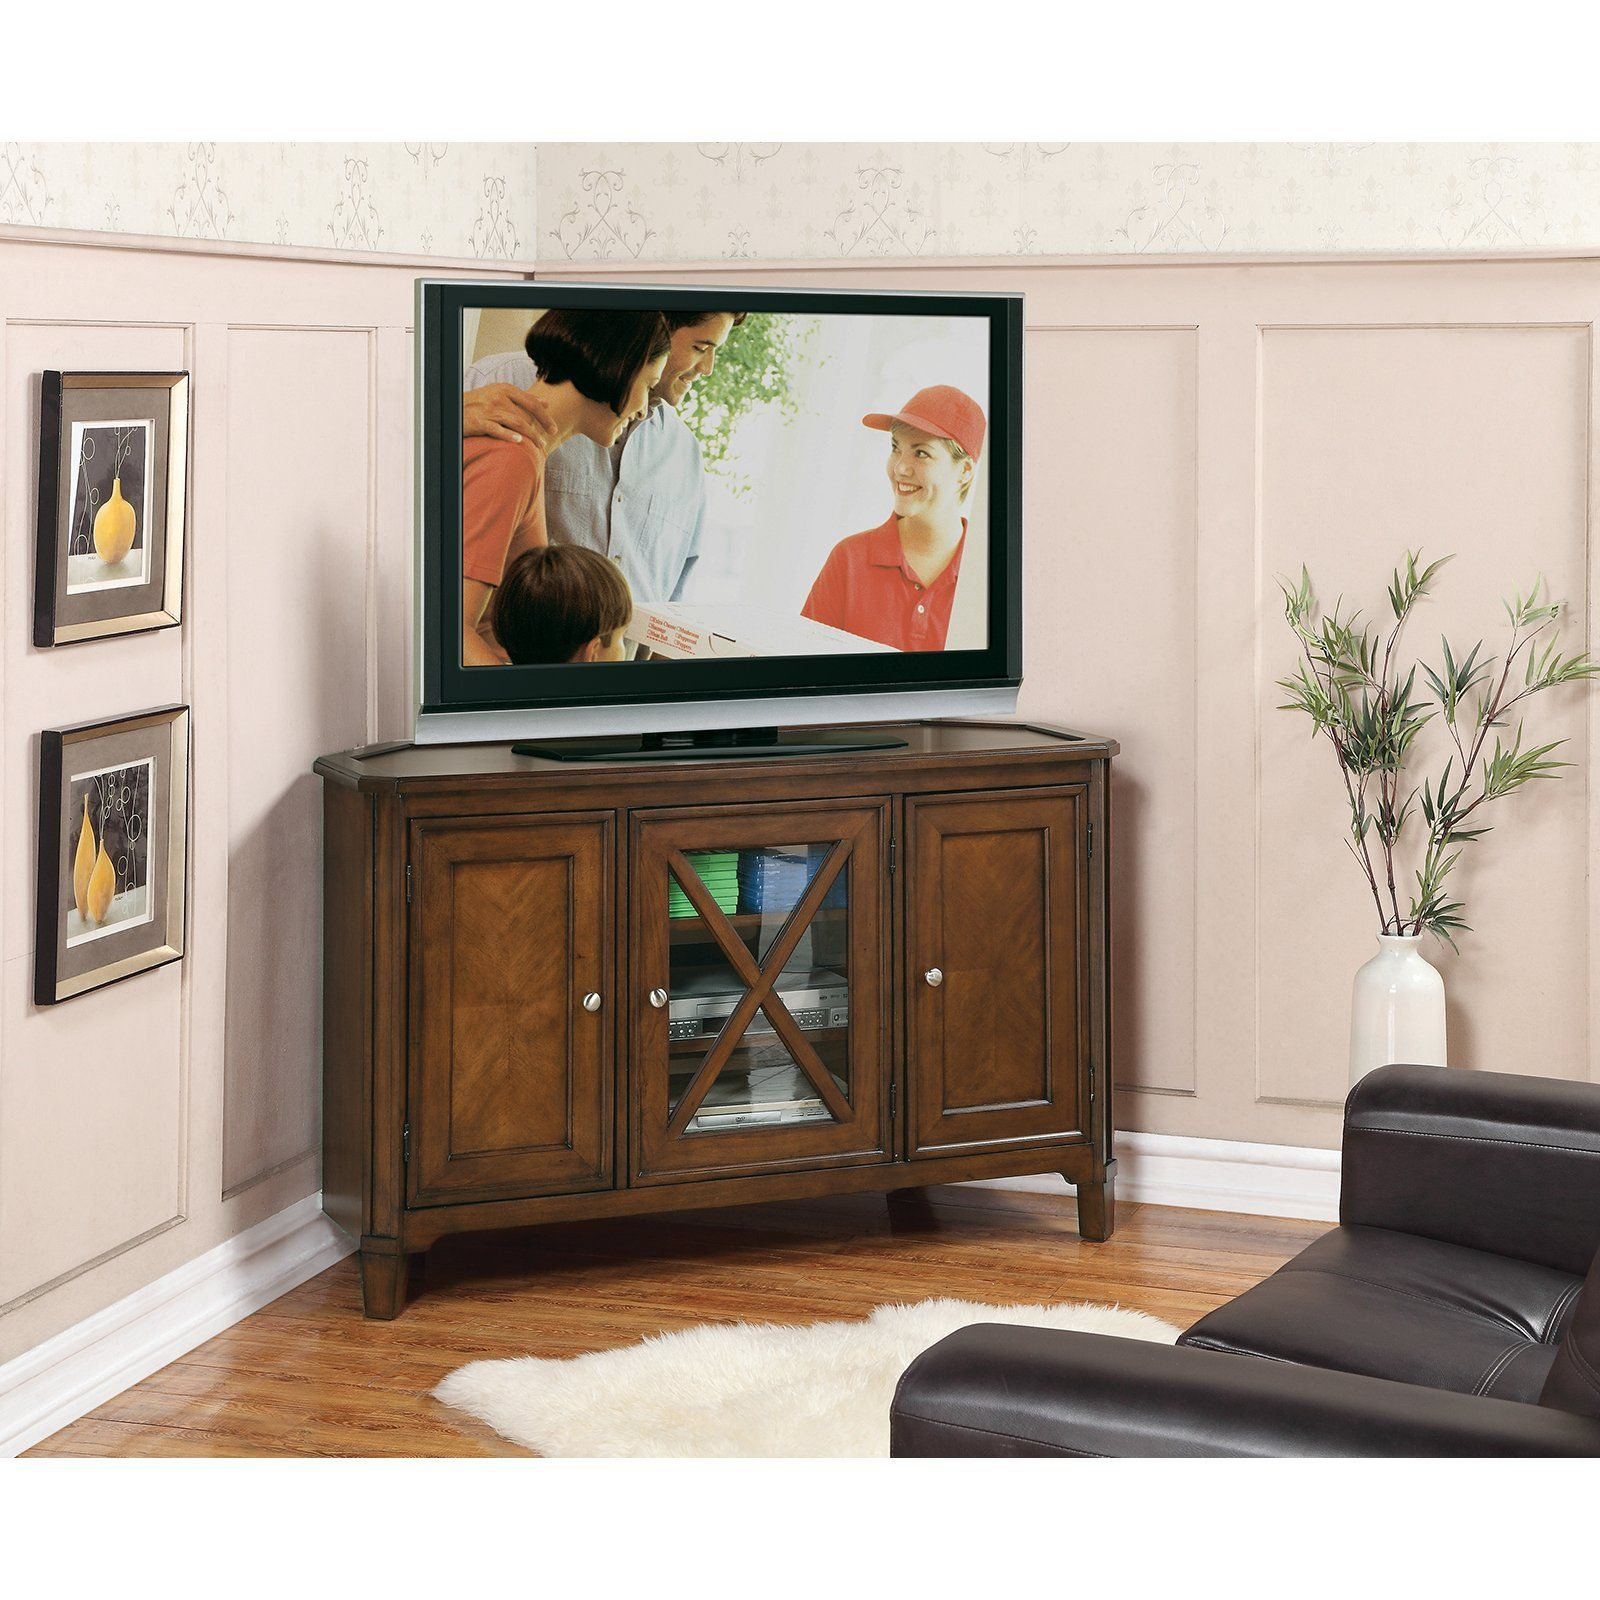 Riverside Inglewood Corner Tv Console  Medium Walnut  $79875 New Living Room Corner Furniture Designs Decorating Inspiration